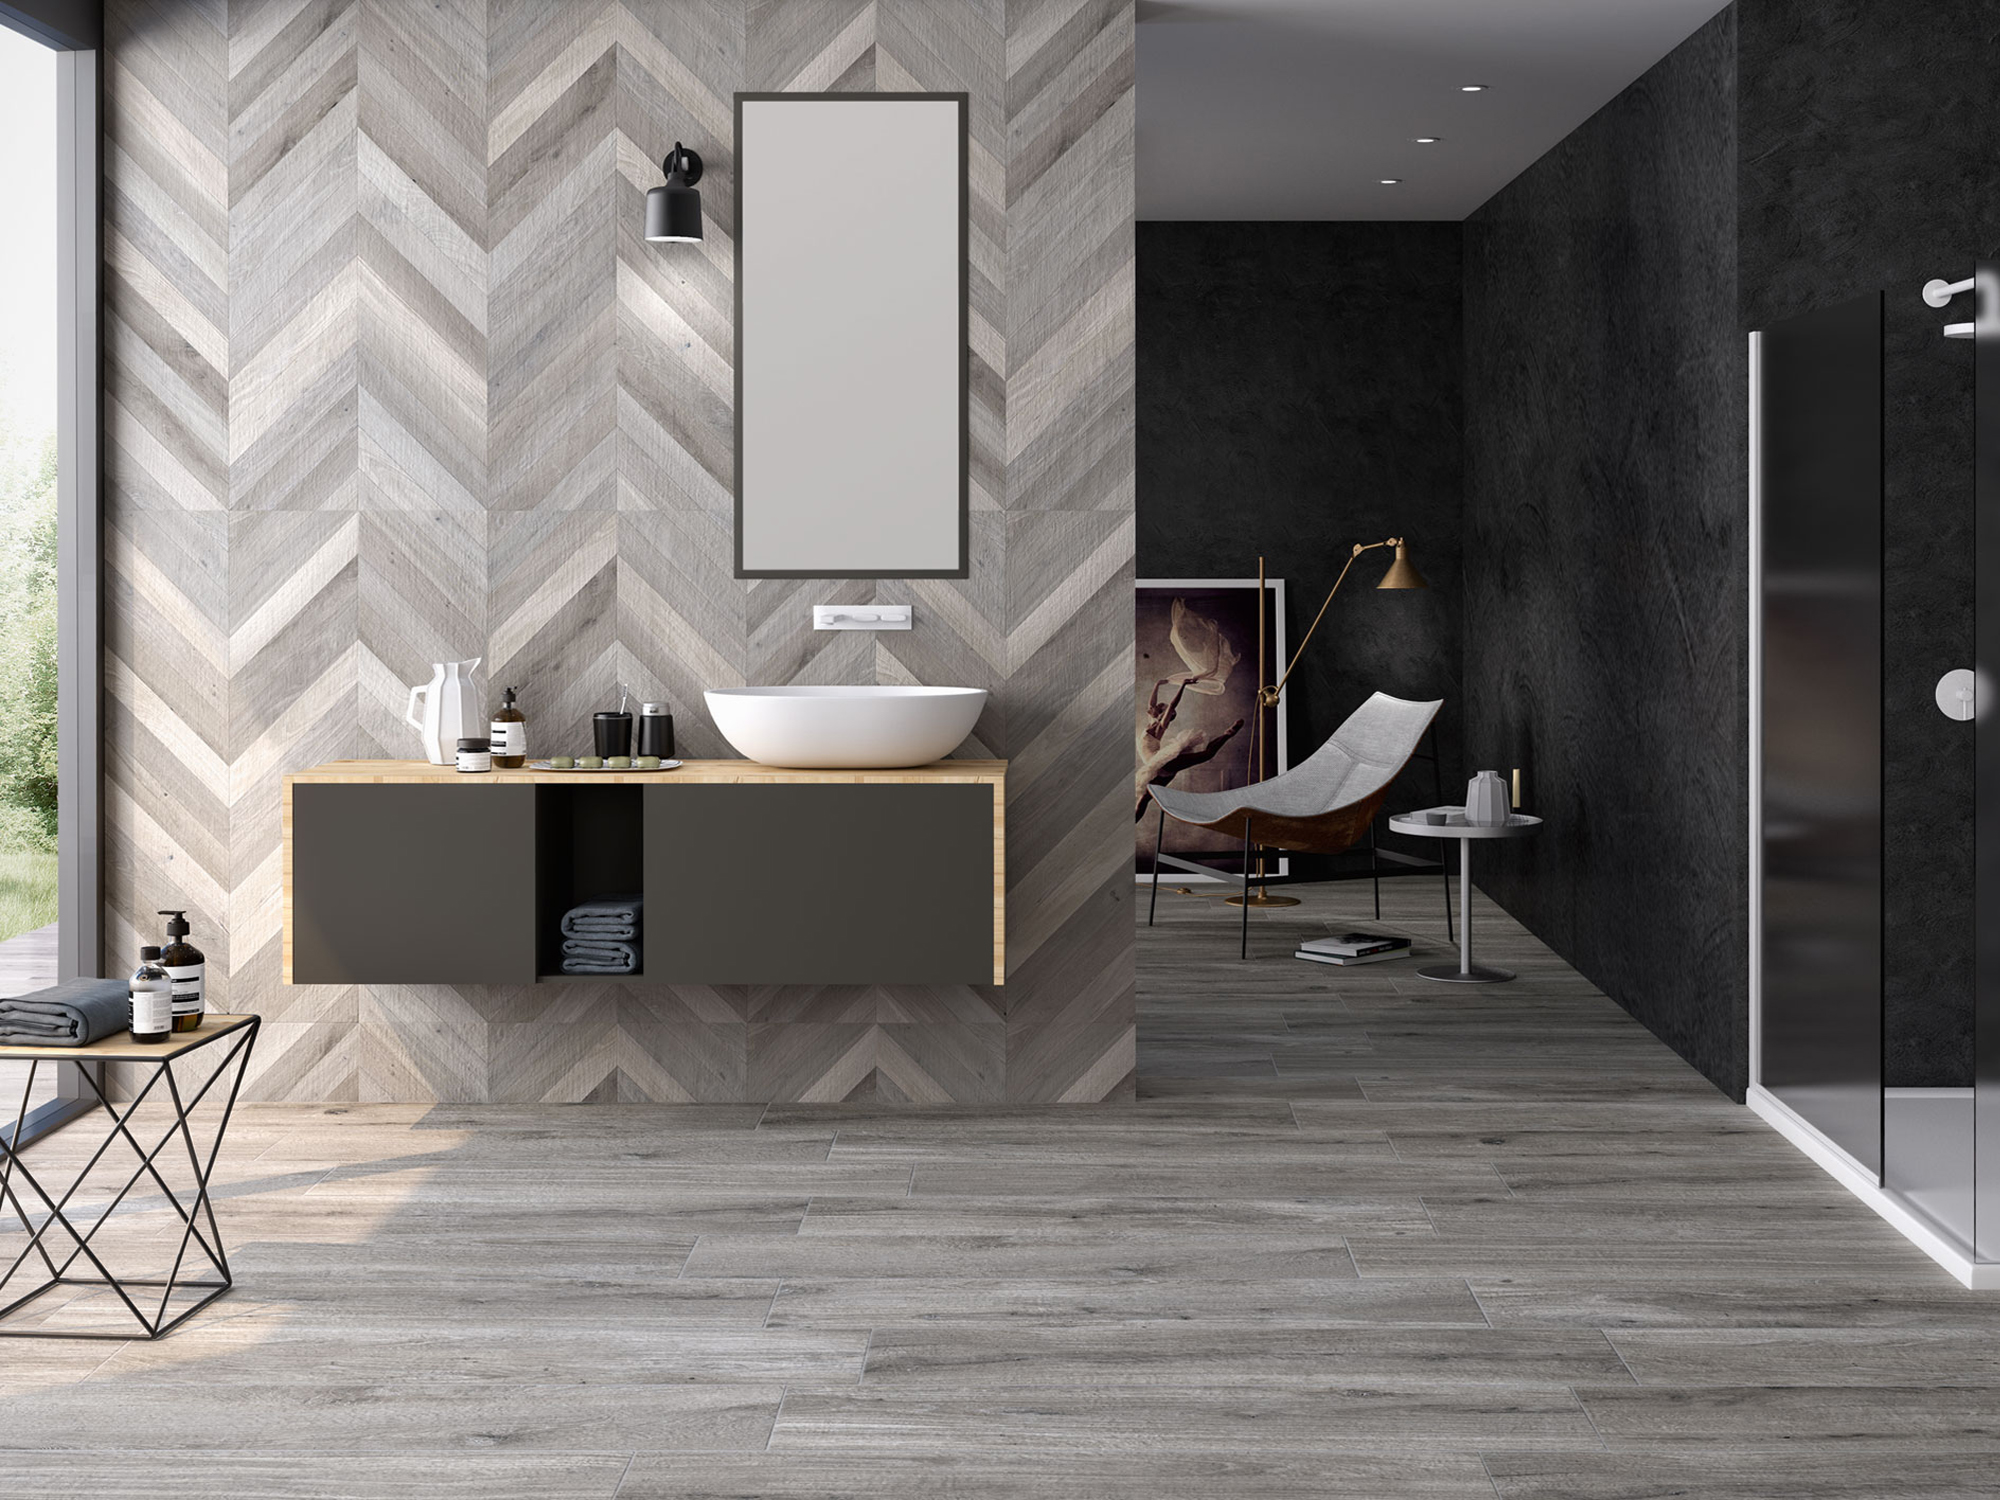 2-pz-floor-heritage-ash-natural-30x120-wall-chevrons-printemps-natural-60x120.jpg